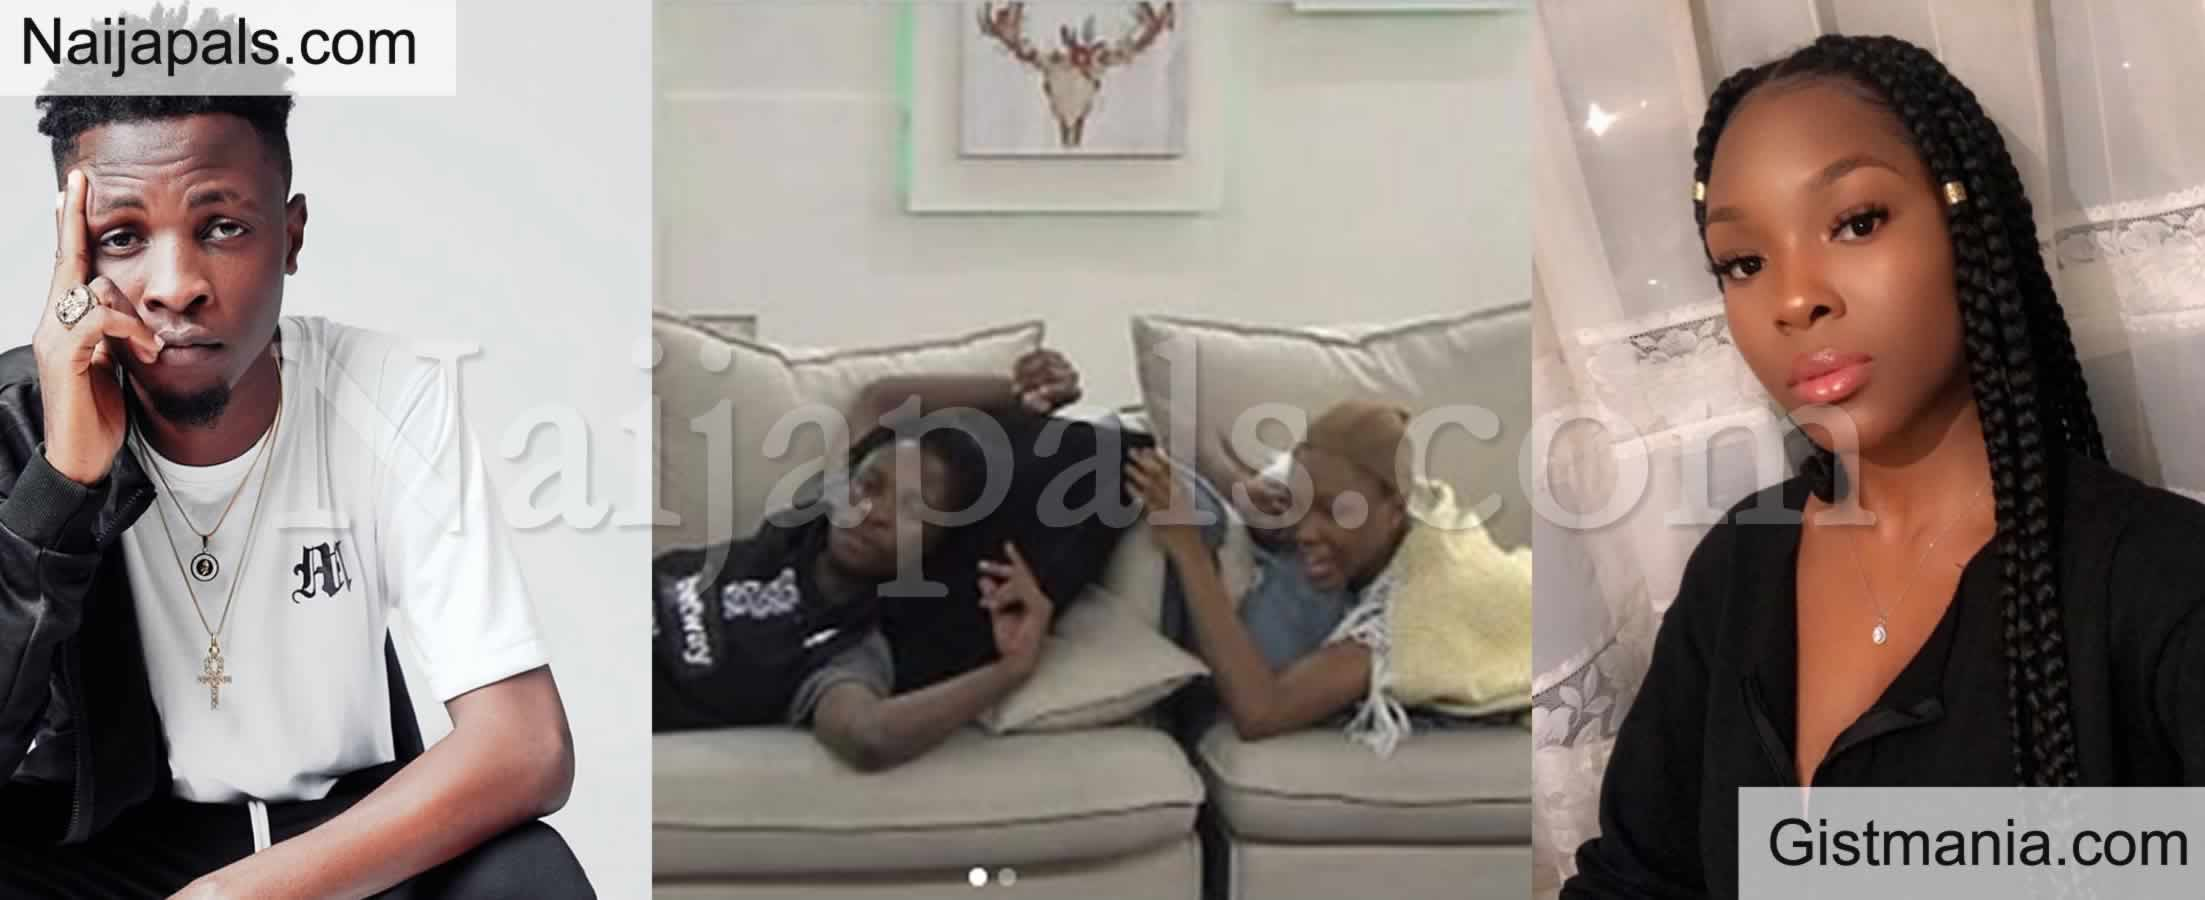 "<img alt='.' class='lazyload' data-src='https://img.gistmania.com/emot/video.gif' /> #BBNaija: <b>""I Love The Way You Looked Out For Me When I Needed To Get My Shit Together""</b> - Laycon To Vee (VIDEO)"